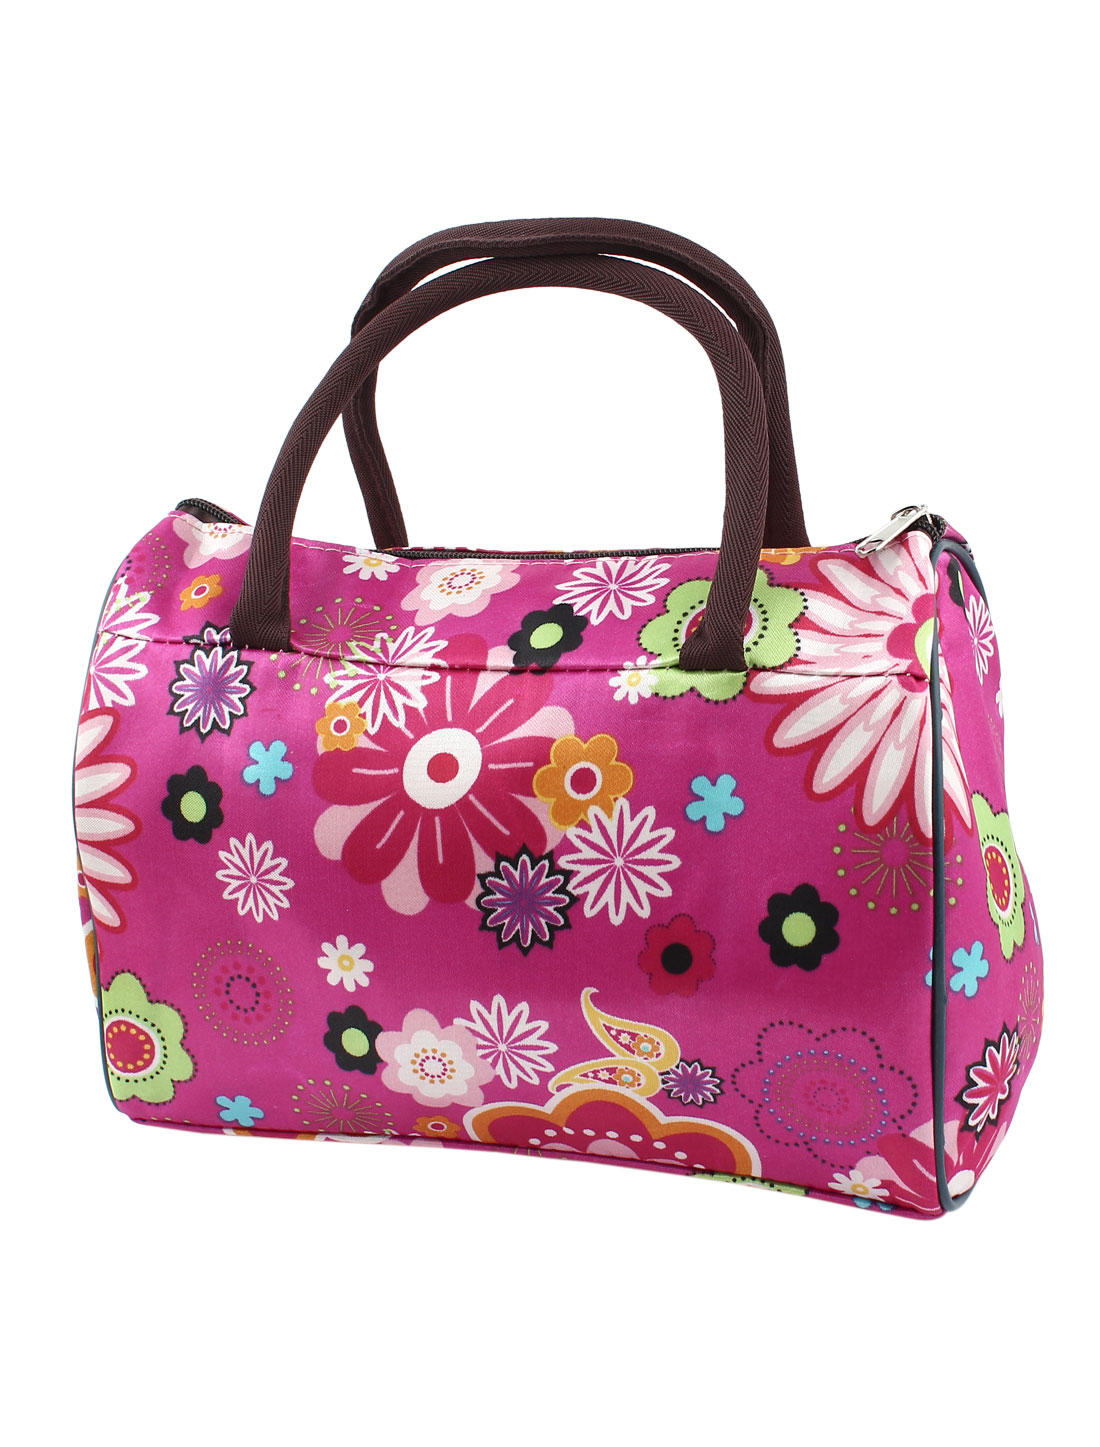 Lady Zipper Closure Multicolor Flower Pattern Tote Bag Handbag Fushcia